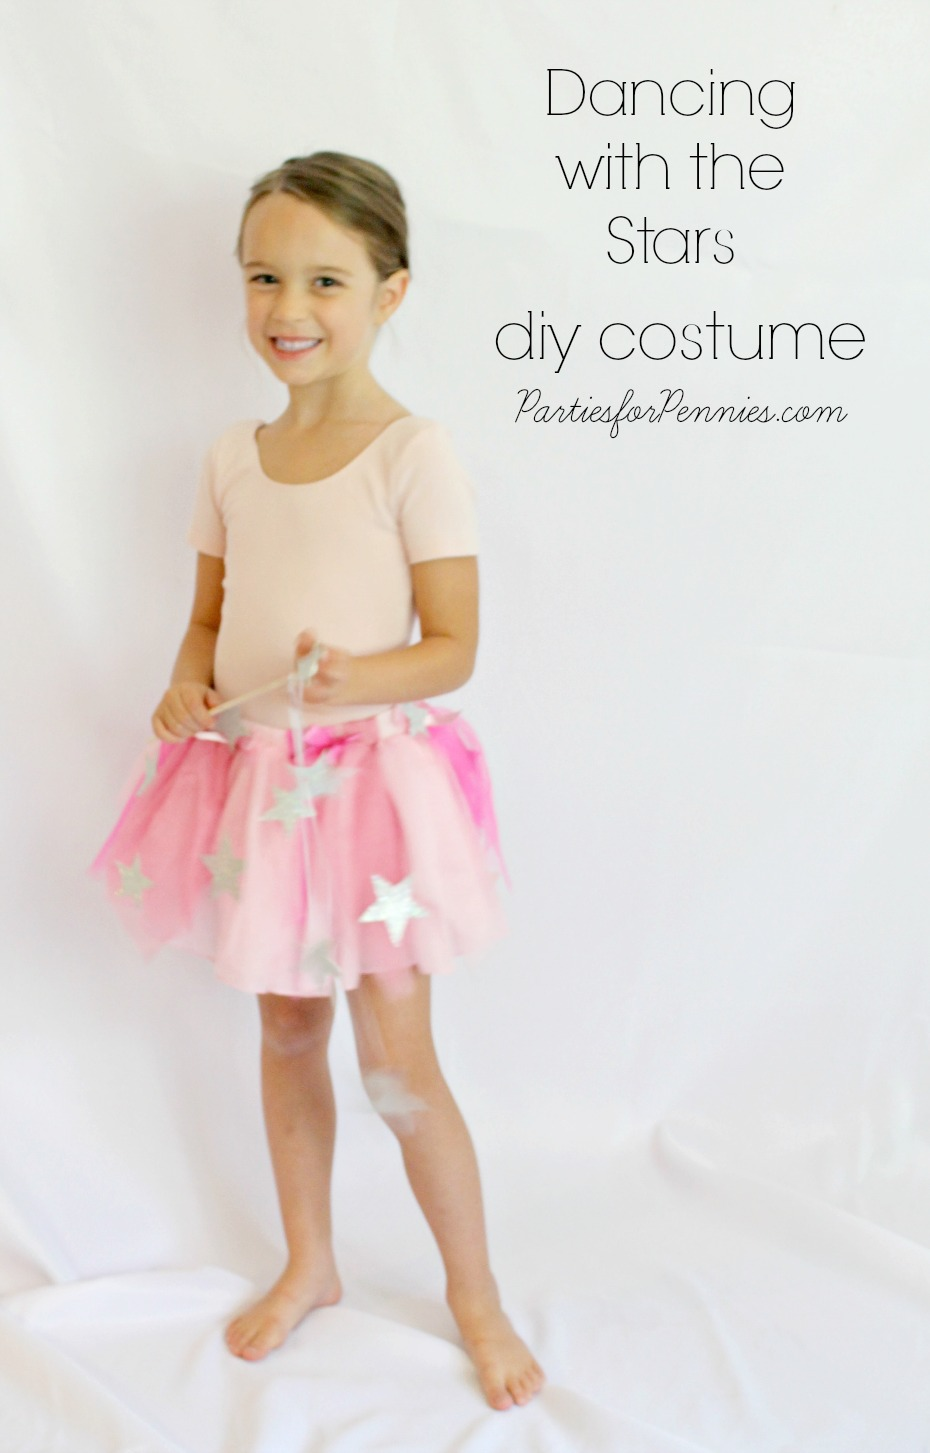 DIY Costume - Dancing with the Stars by PartiesforPennies.com